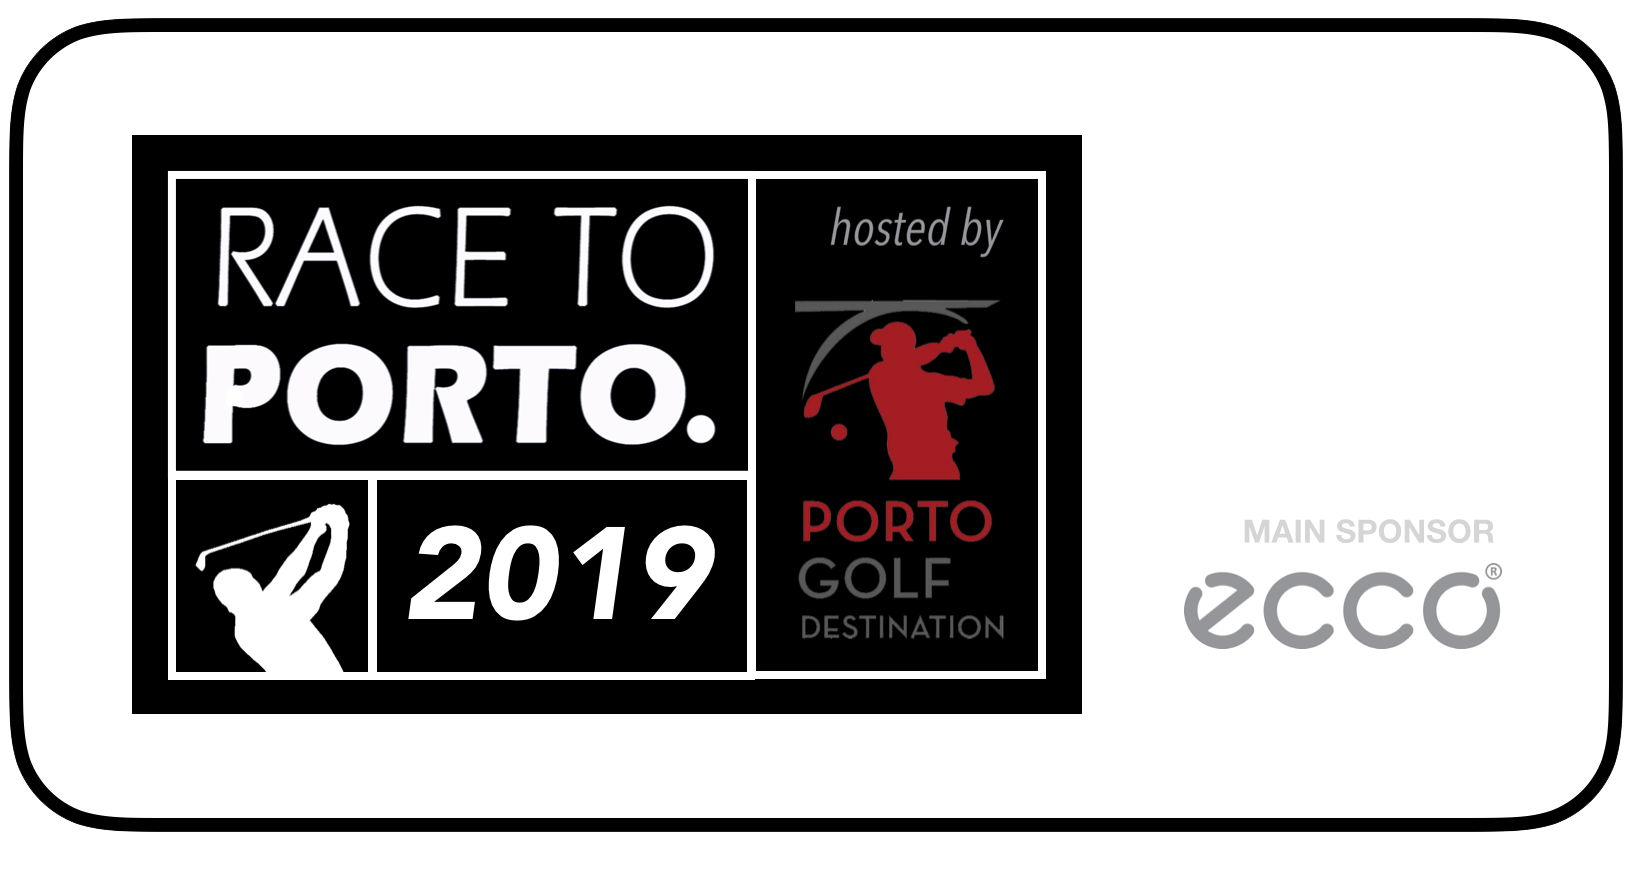 Race to Porto 2019 - by ecco